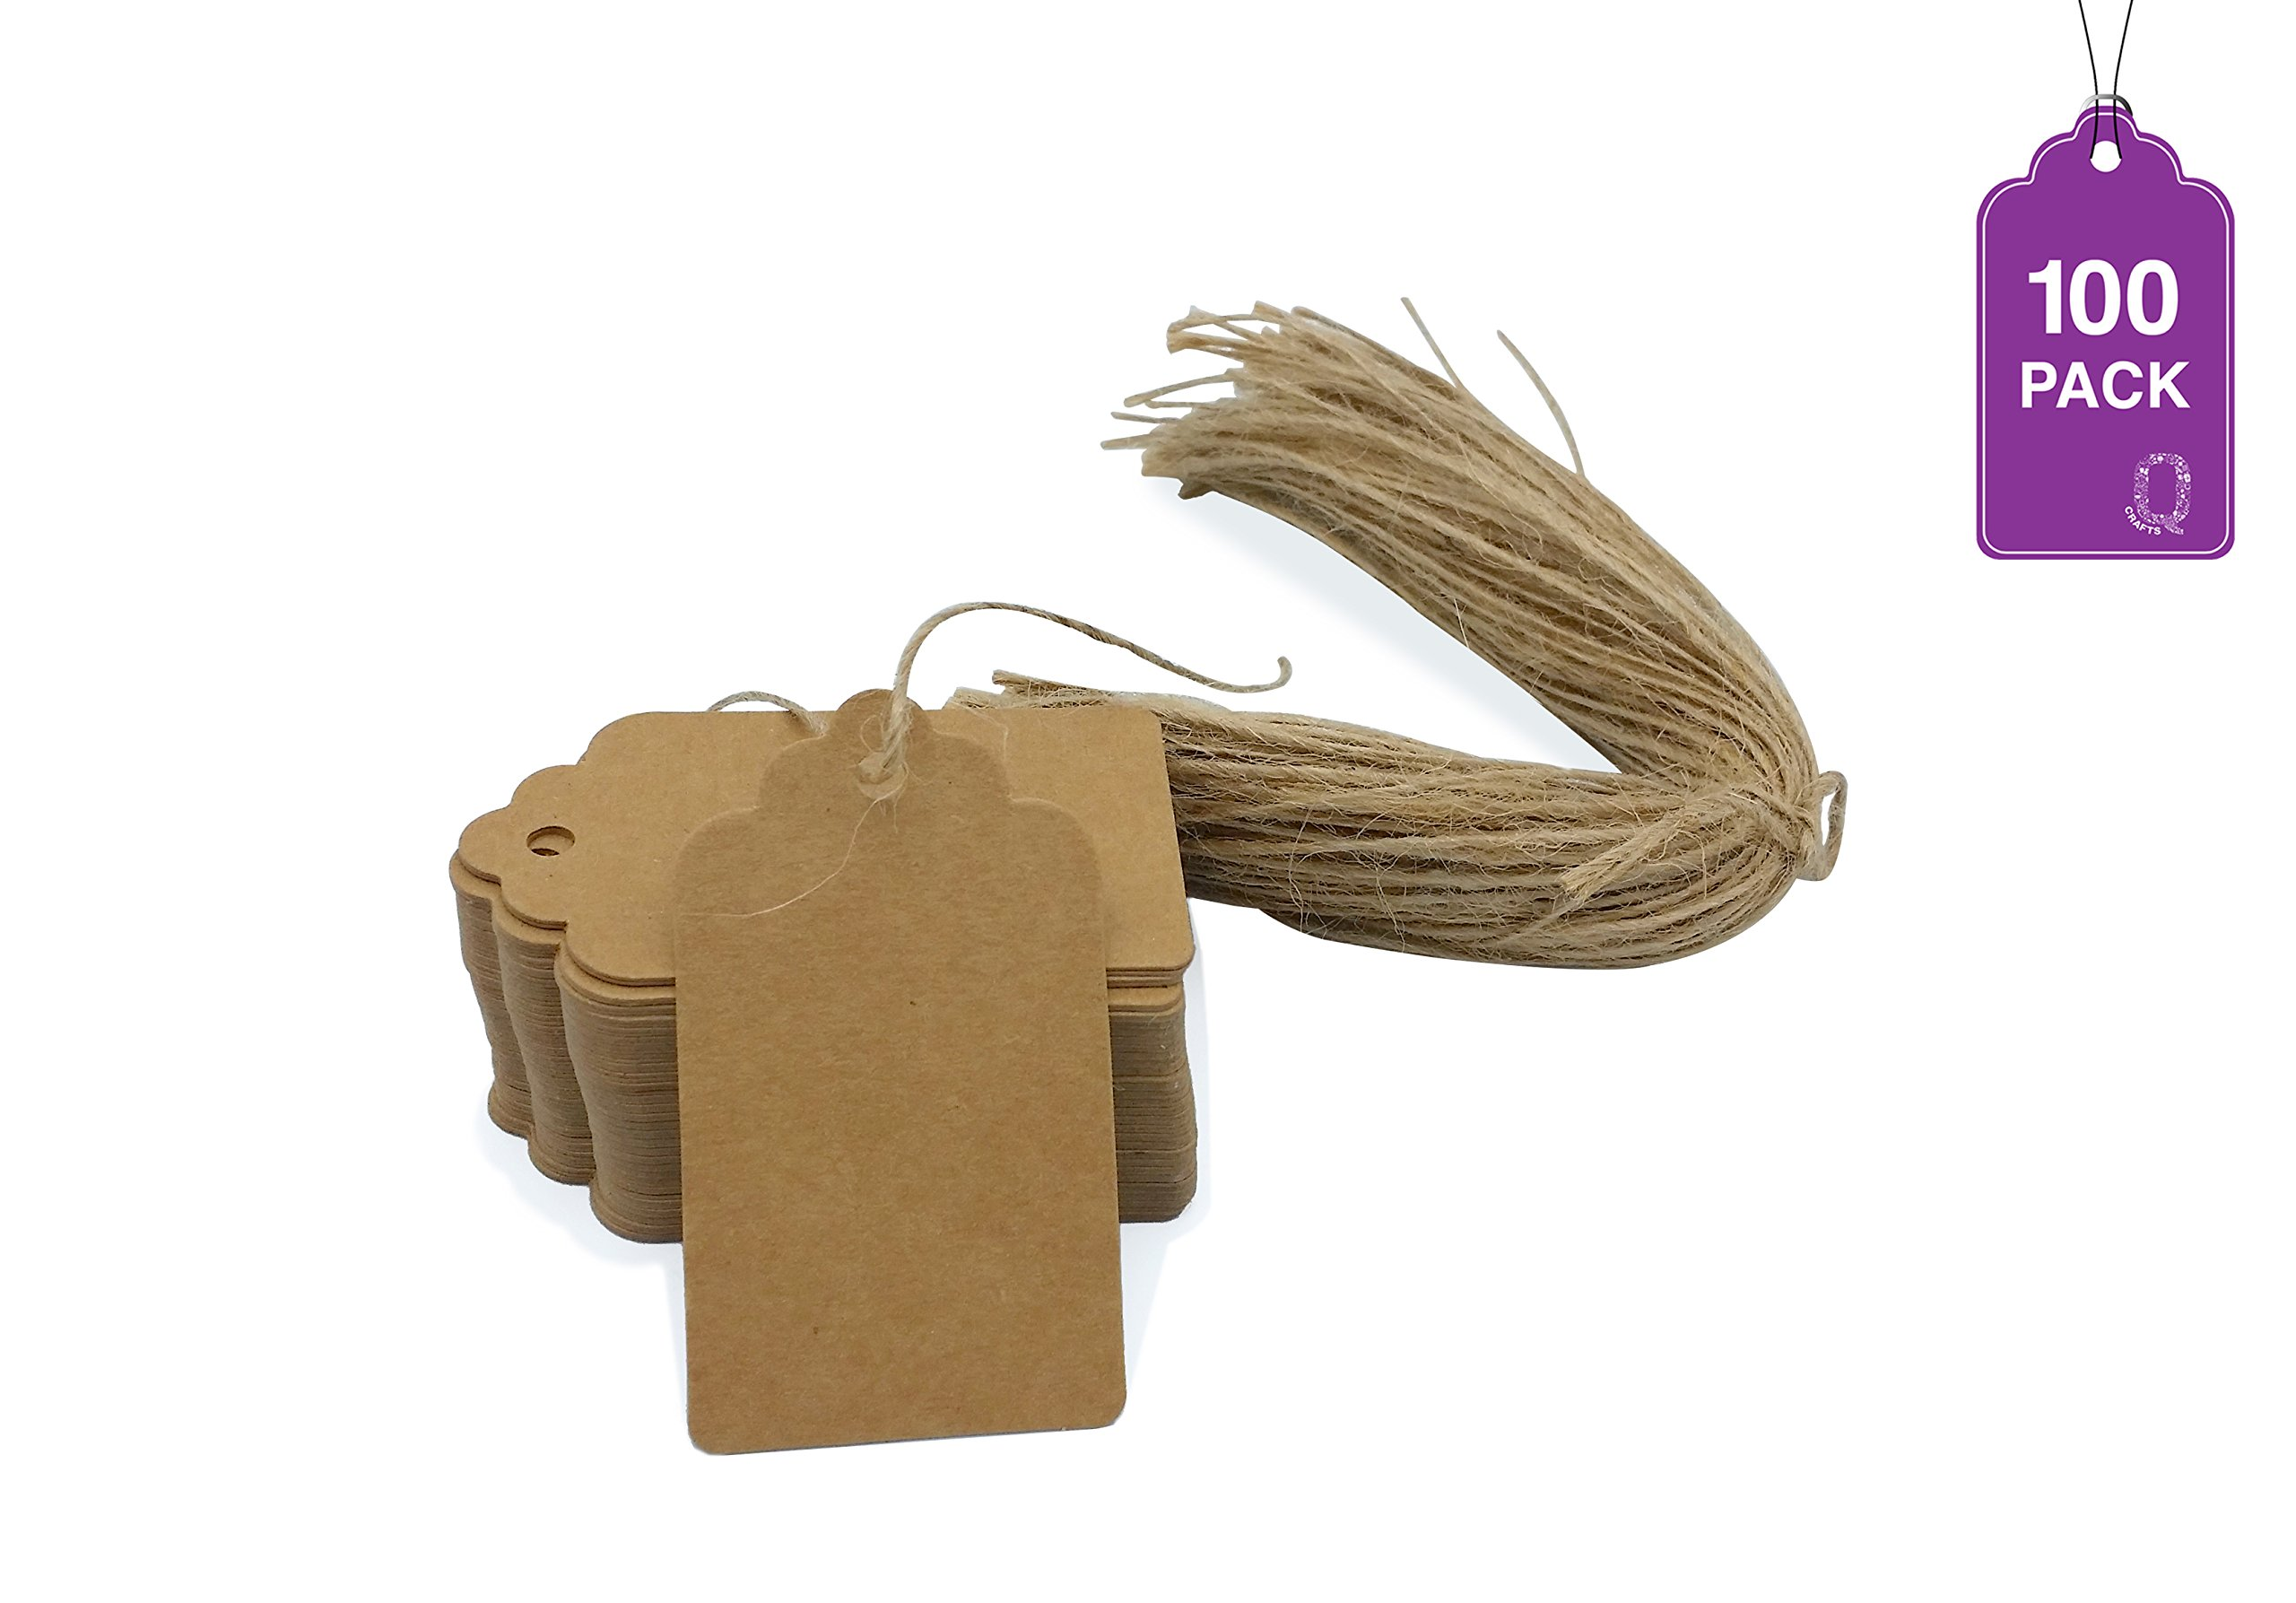 KRAFT Write-on PRICE / GIFT TAGS 100 PCS with 100 strings. Blank ...